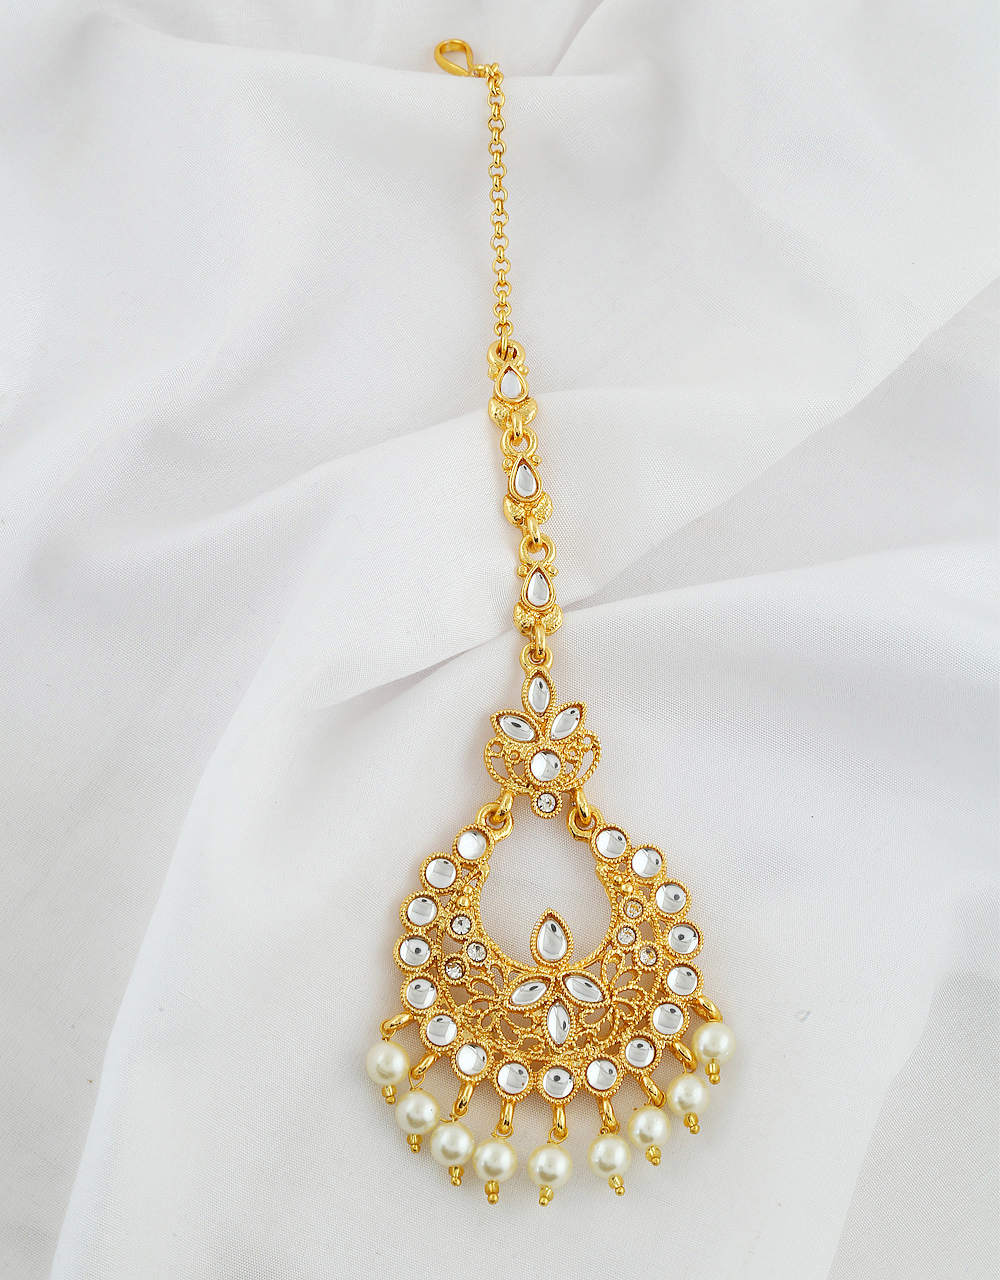 Gold Finish Mang Tika Styled With Pearls Beads Hair Jewellery